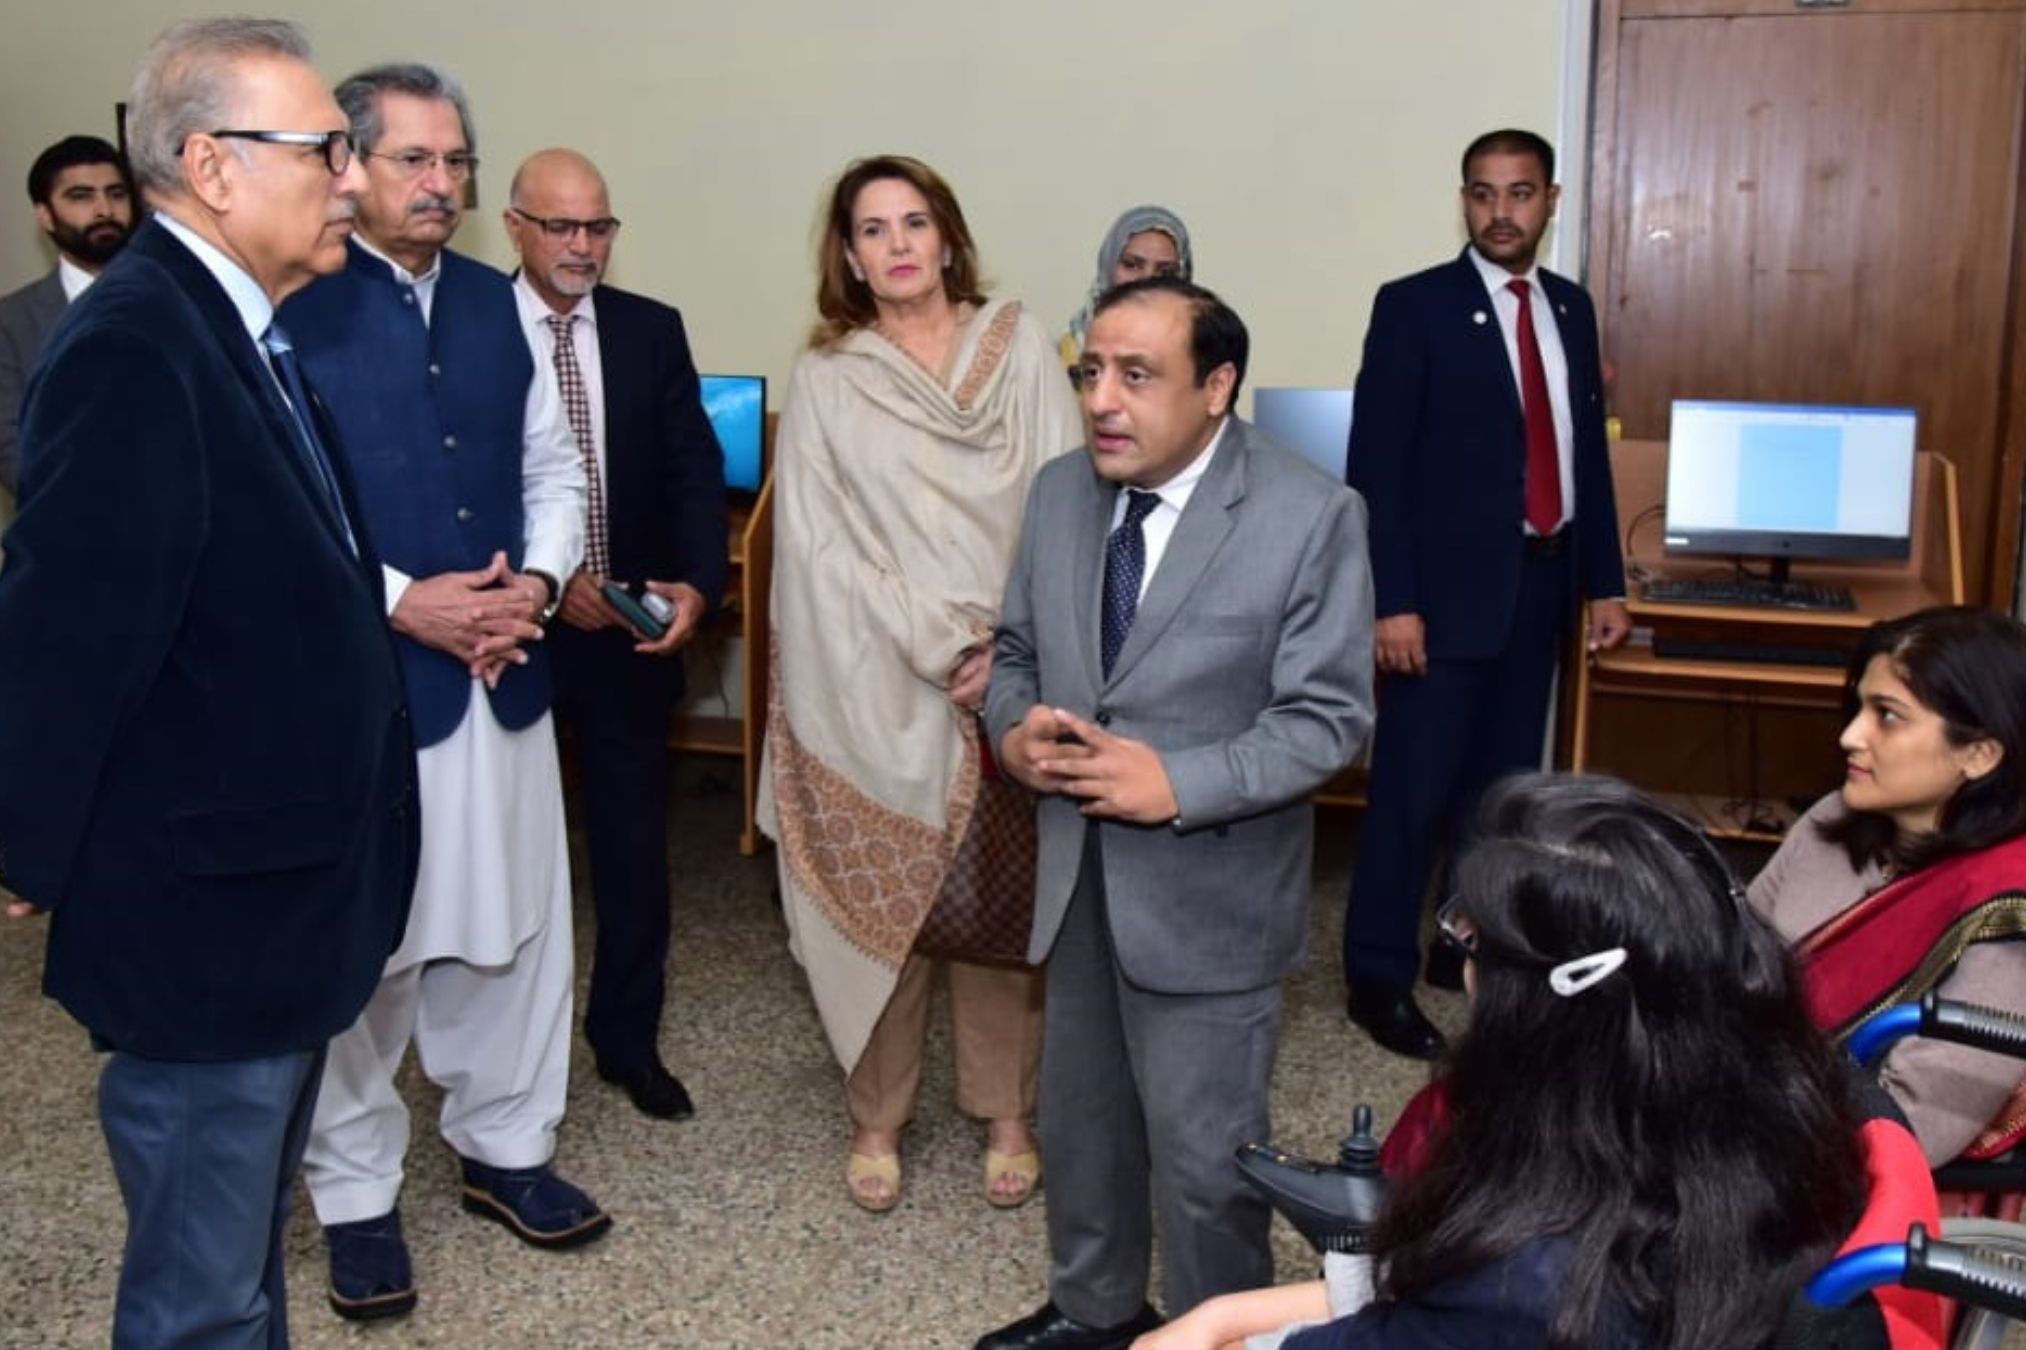 President of Pakistan Inaugurated of Center for Inclusive Development